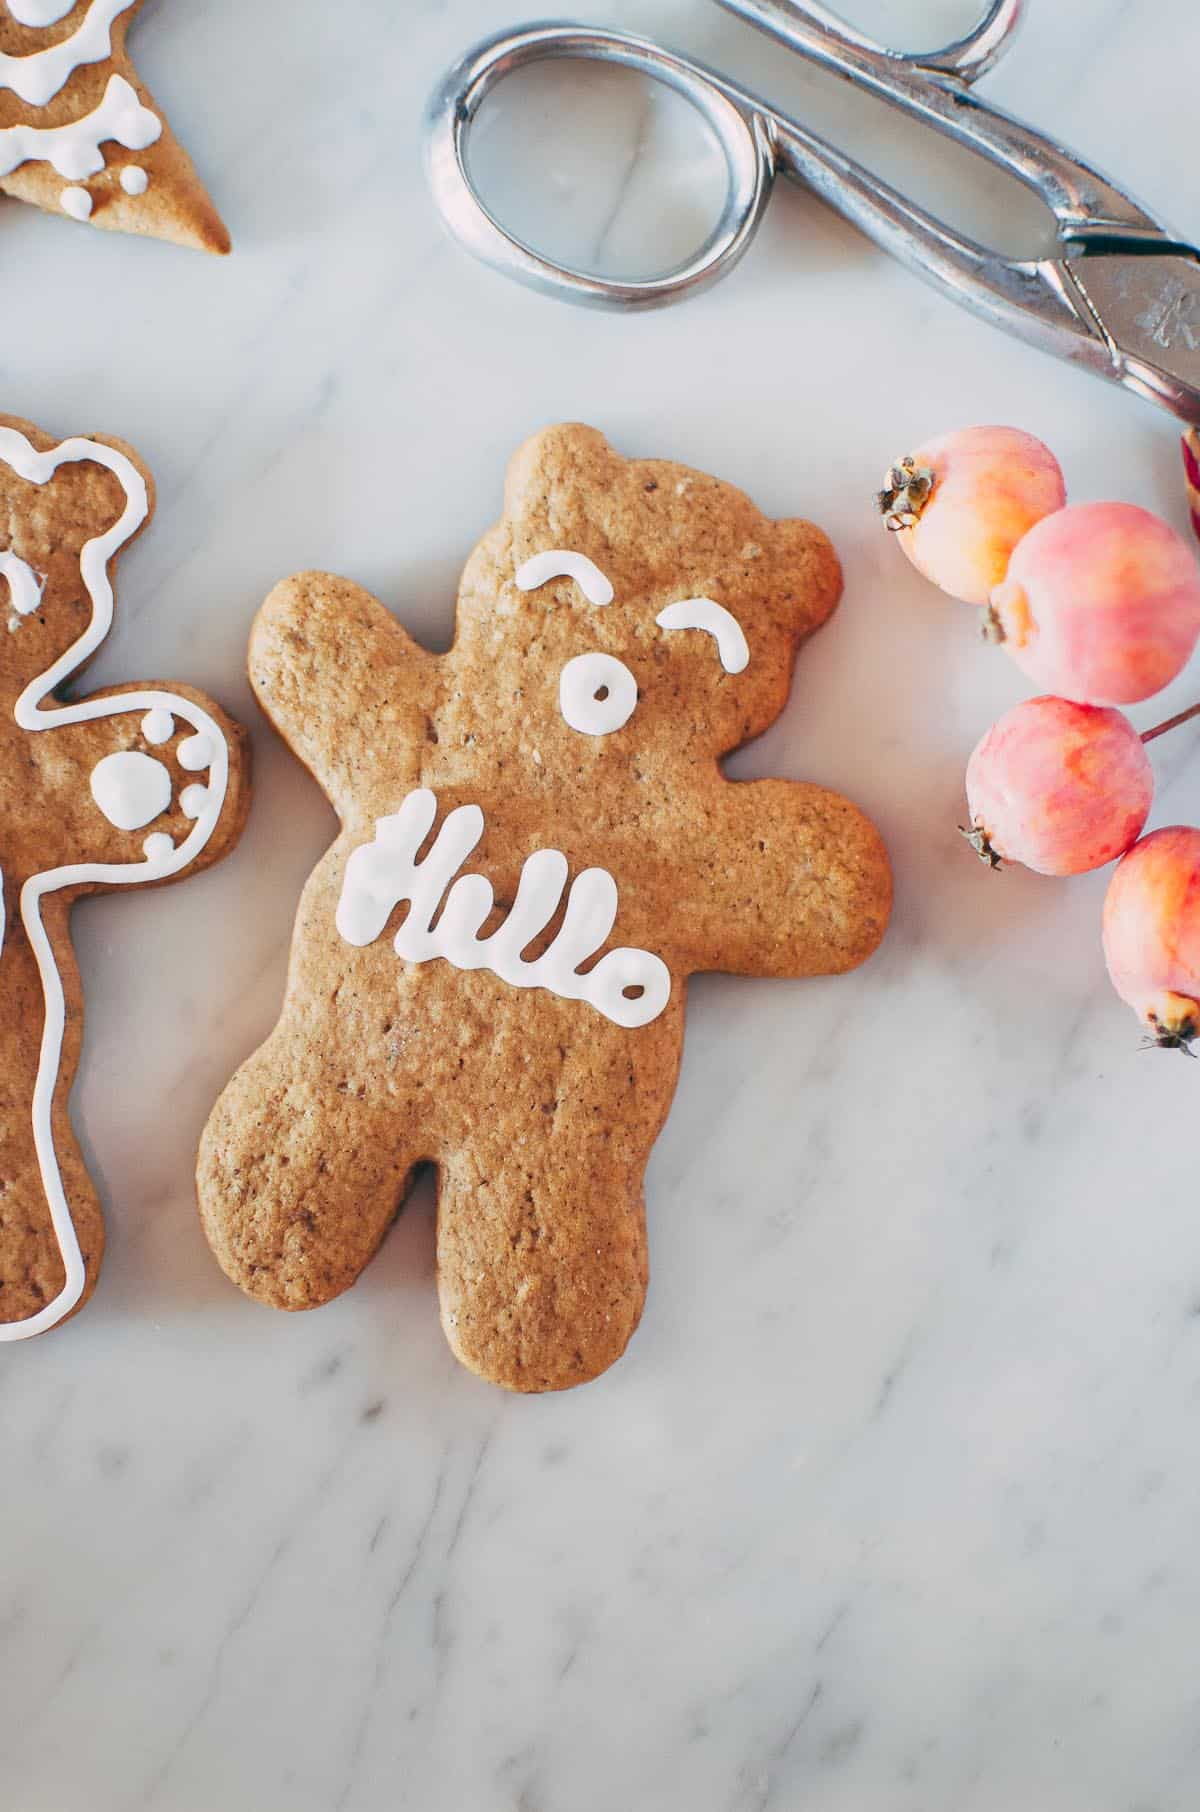 Swedish Ginger Cookies (Pepparkakor)| VeryEATalian